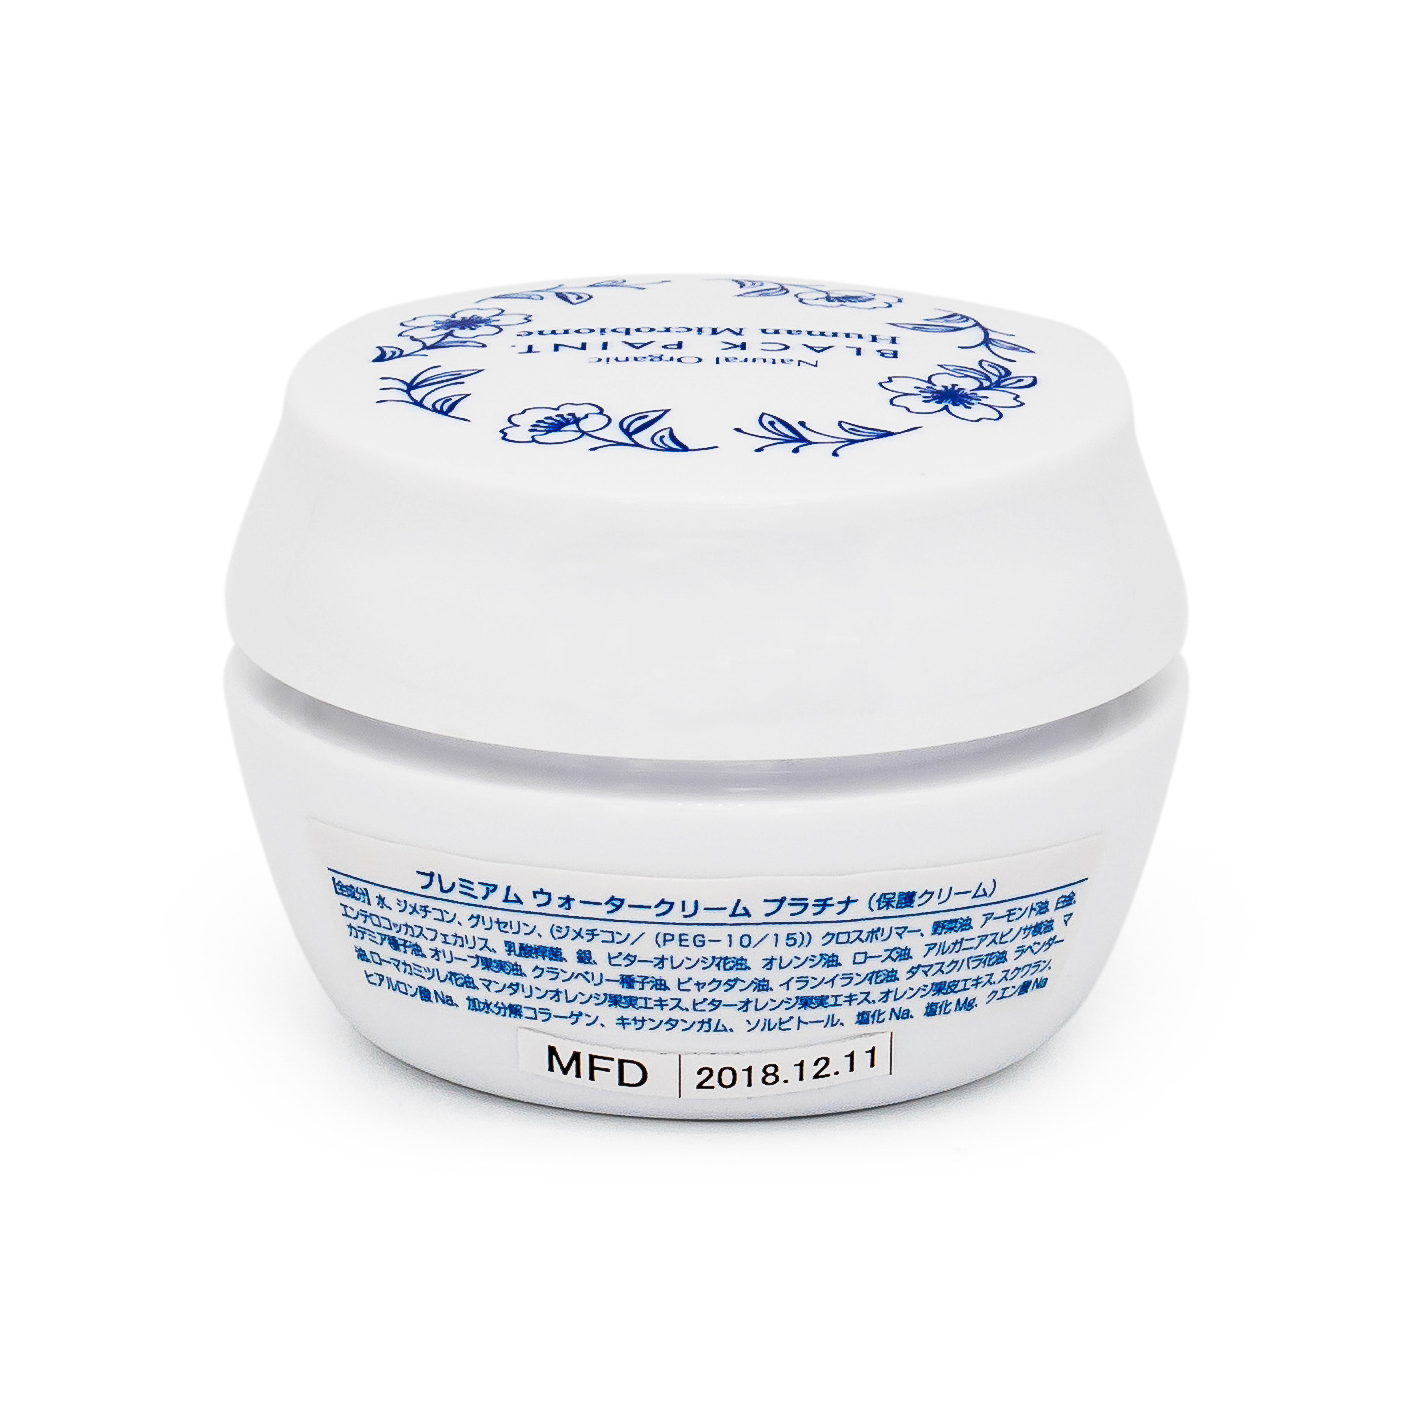 Water Cream Platinum 25g with Human Microbiome - back